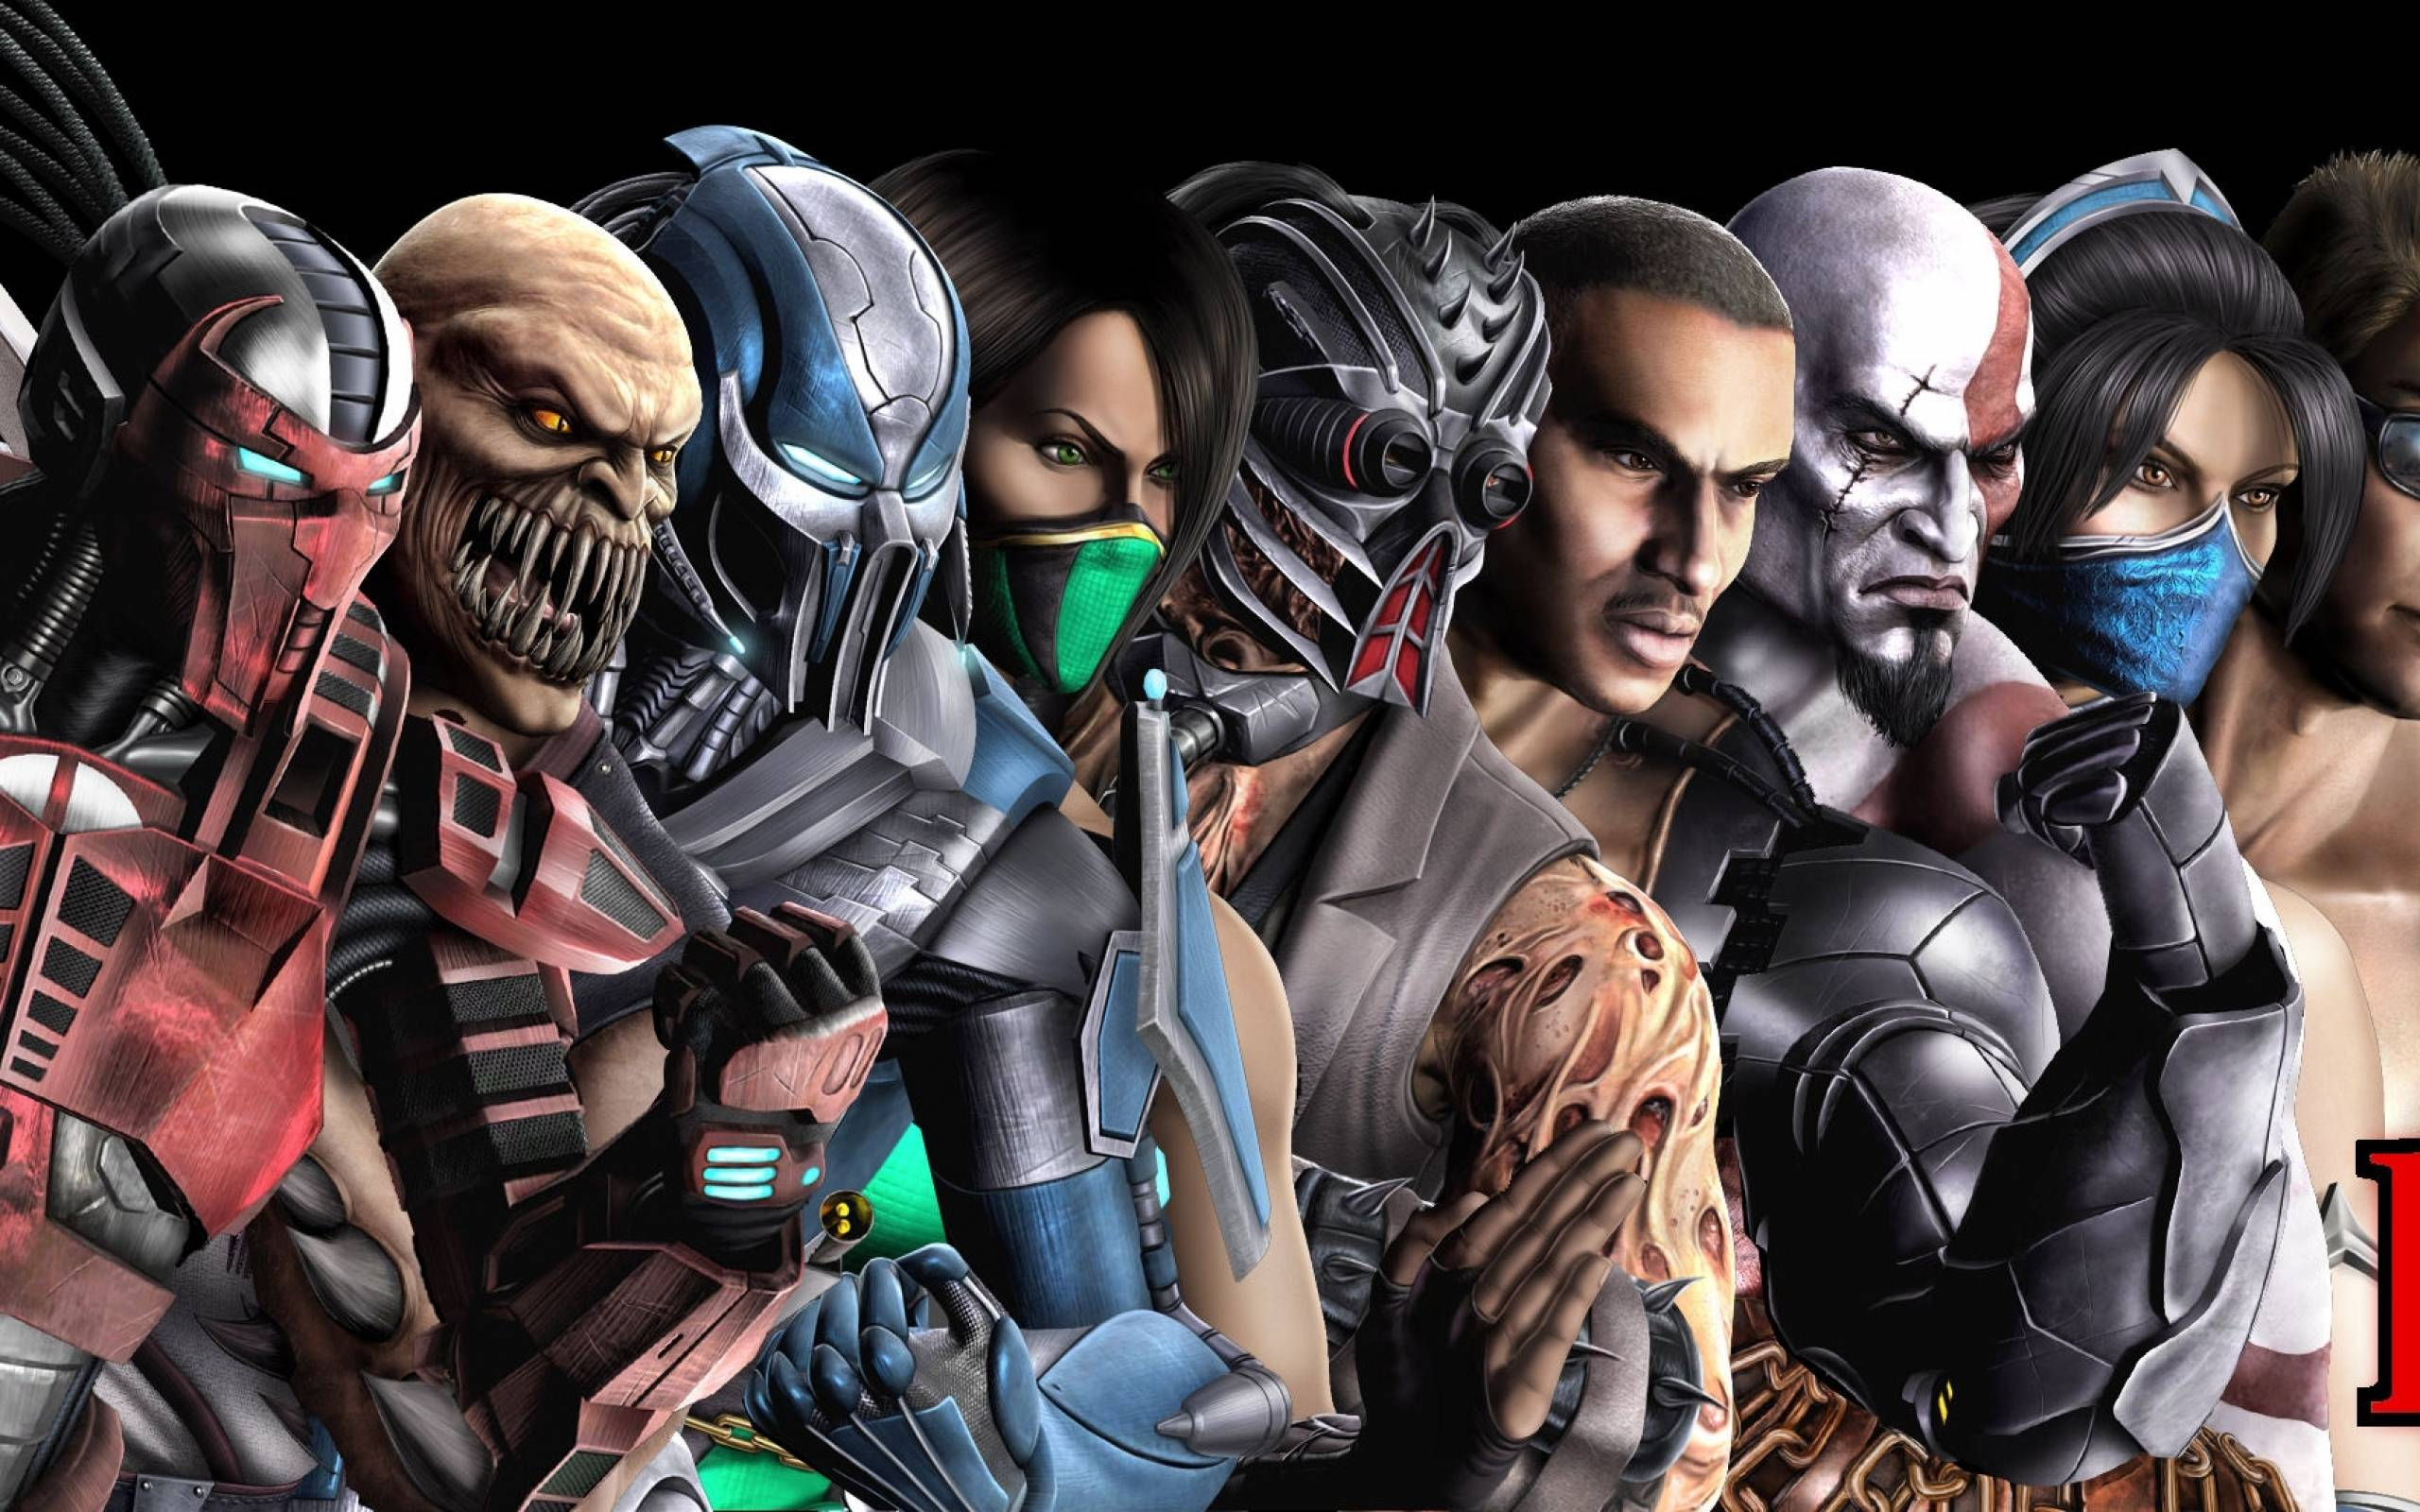 Pictures of Mortal Kombat 9 Characters - #rock-cafe